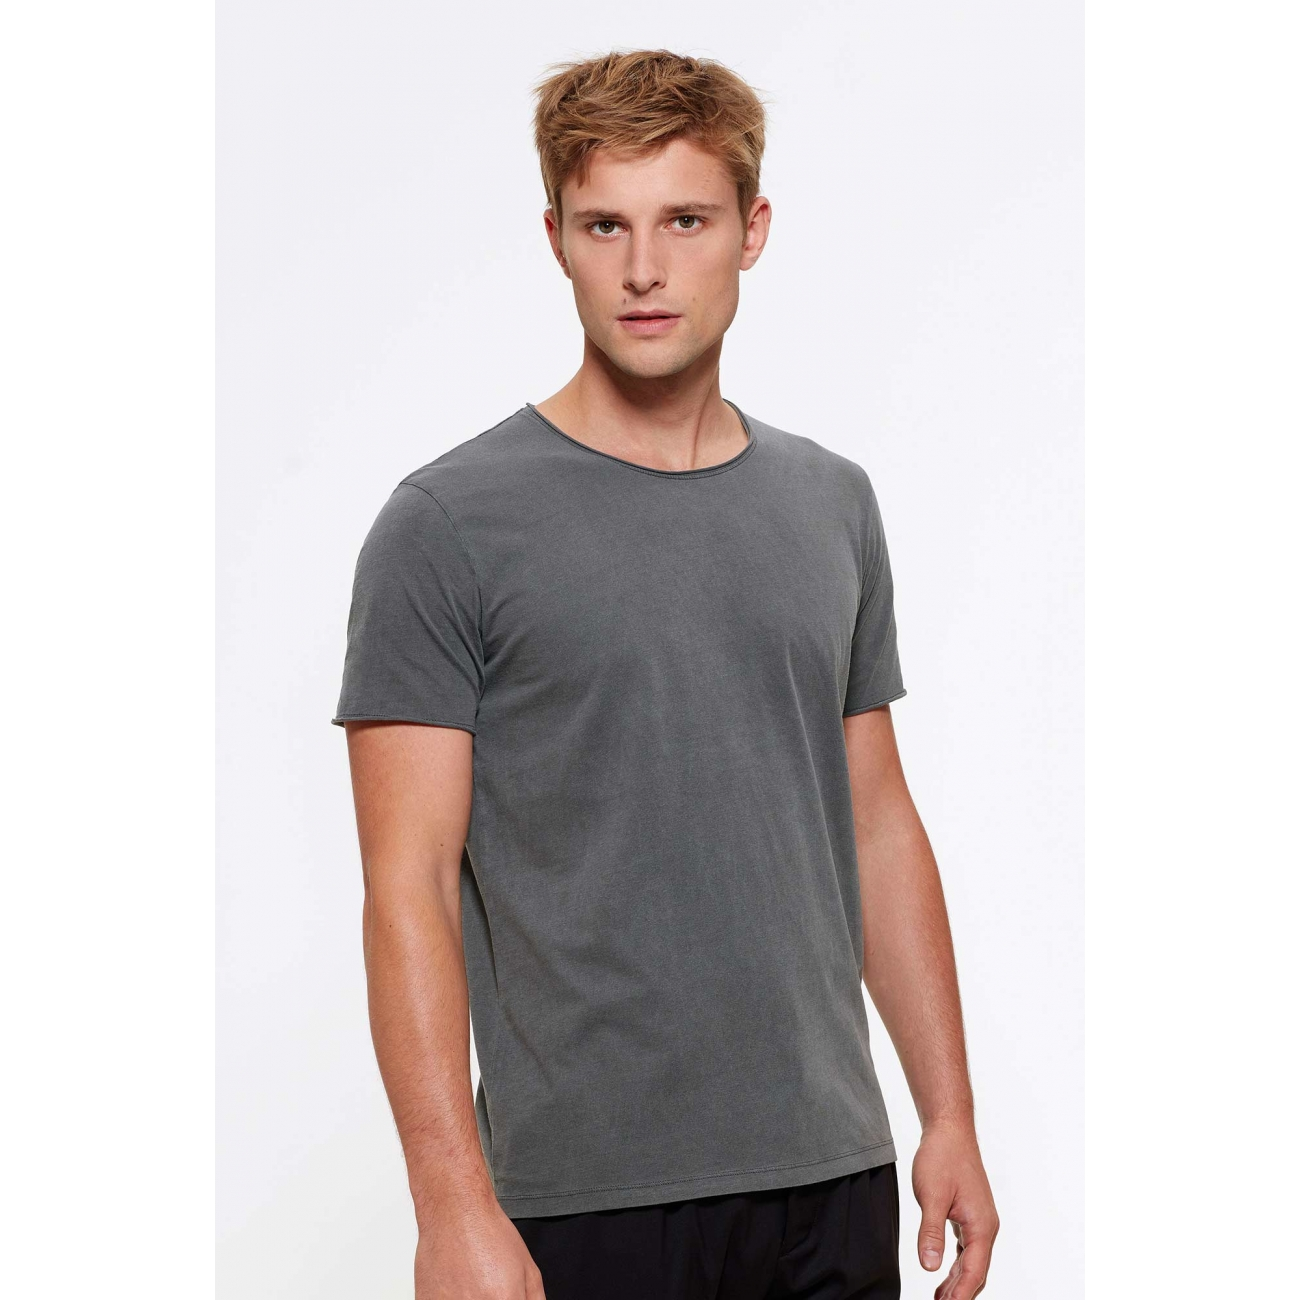 https://tee-shirt-bio.com/4802-thickbox_default/tee-shirt-coton-bio-homme-couleur-anthracite-col-et-bords-francs-col-vintage.jpg